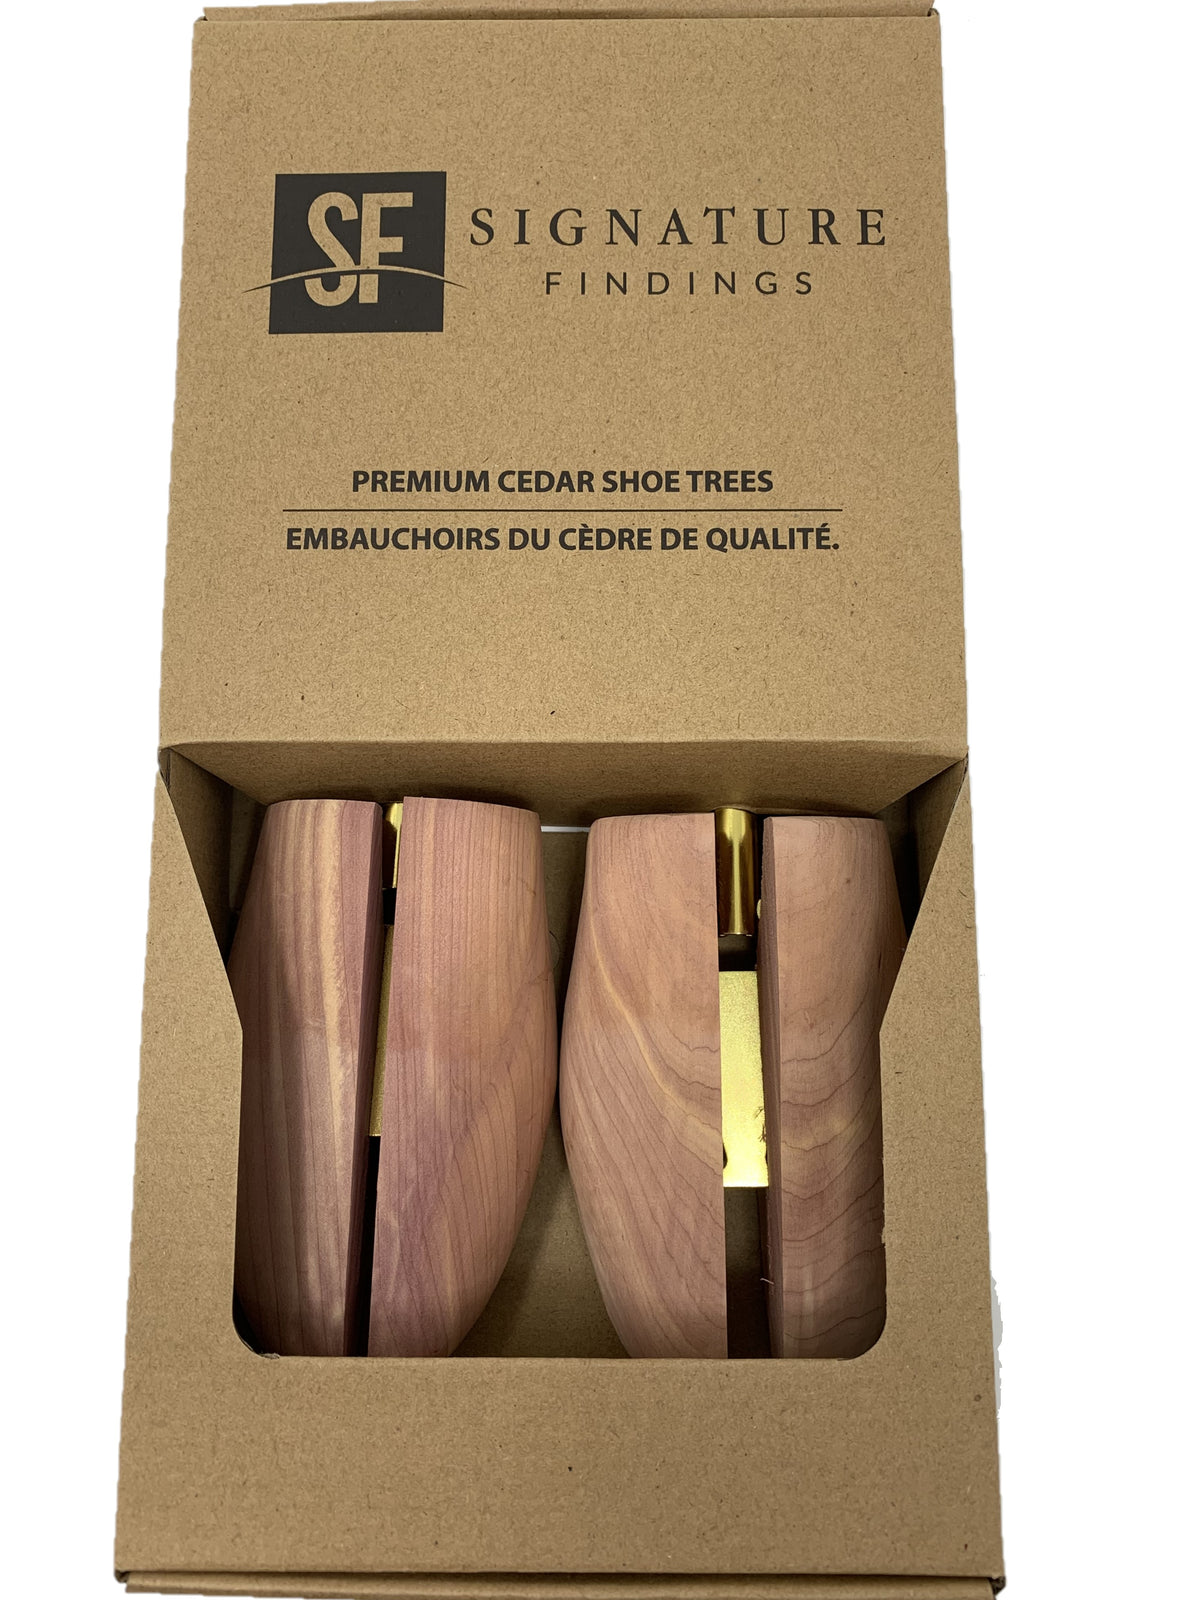 Combination Cedar shoe tree